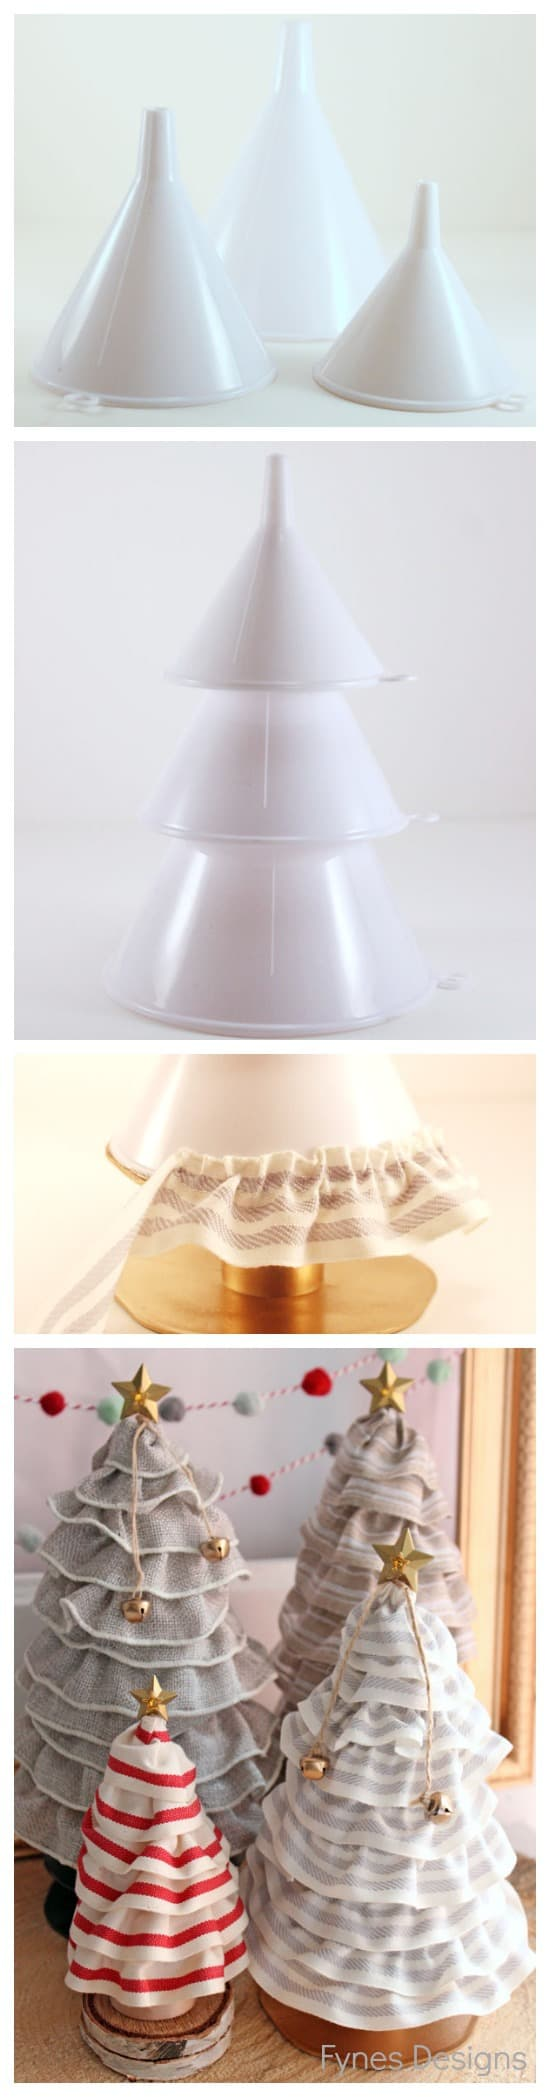 DIY Christmas Tree cones for ONLY 99¢. No more pricy styrofoam! from fynesdesigns.com | Christmas Tree Cone by popular Canada DIY blog, Fynes Designs: collage image of a plastic kitchen funnel and Christmas tree cone.